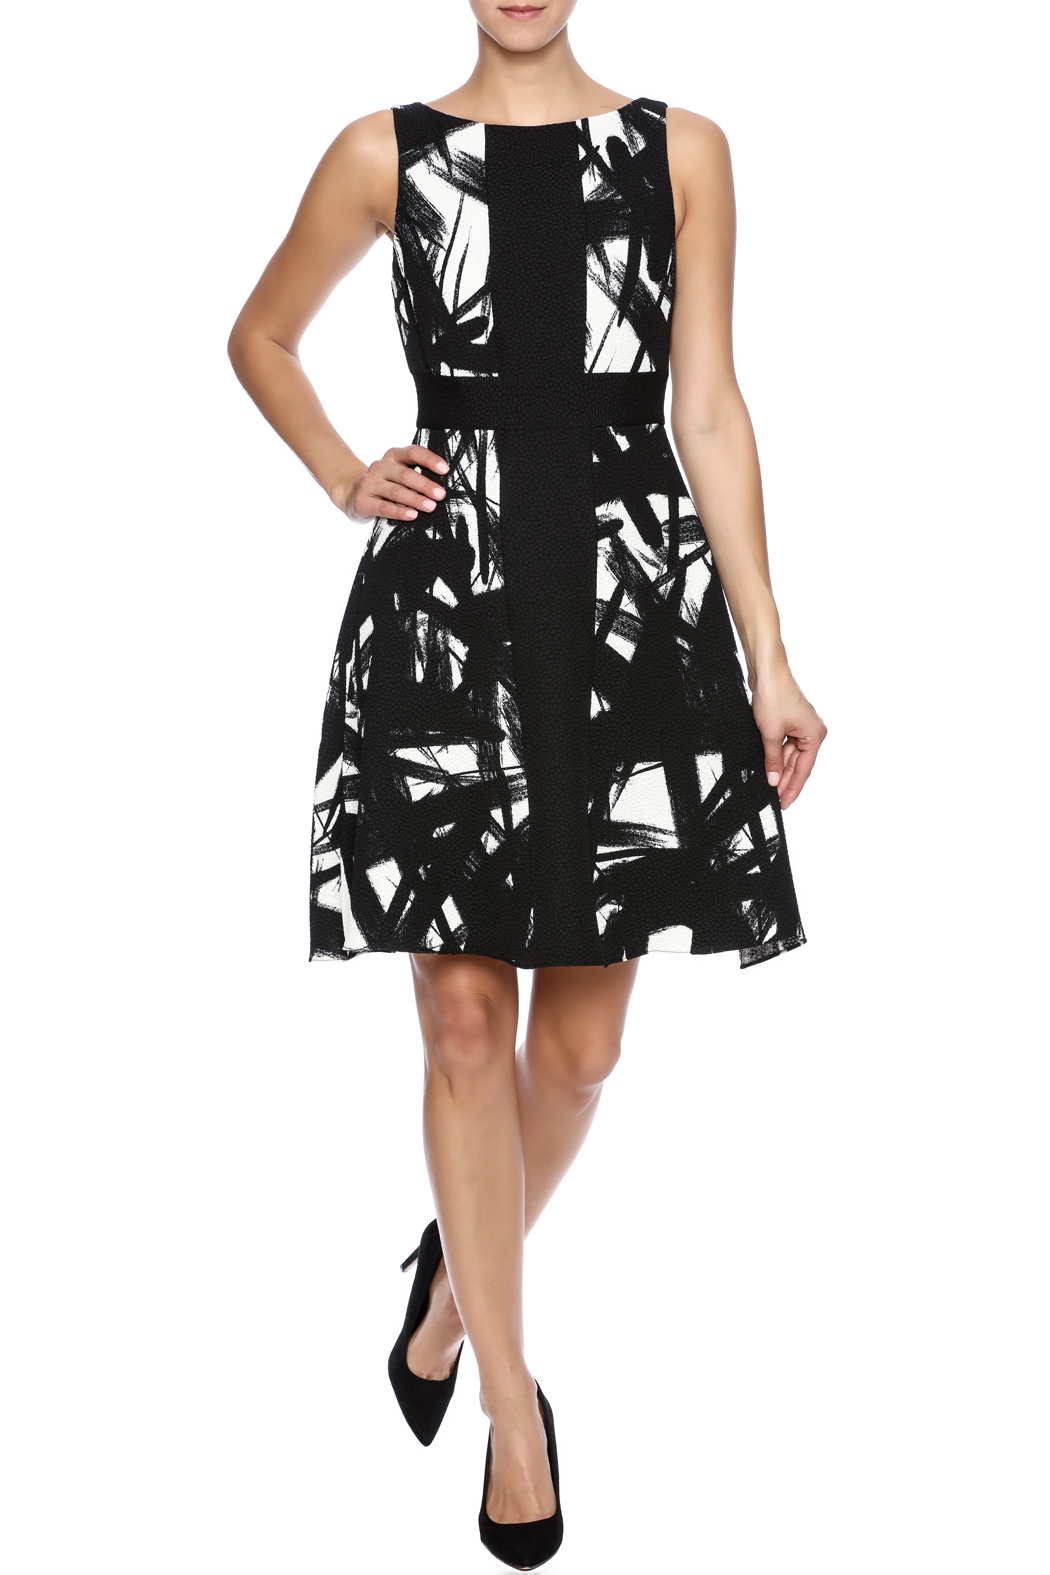 Black dress with white lines by tracy